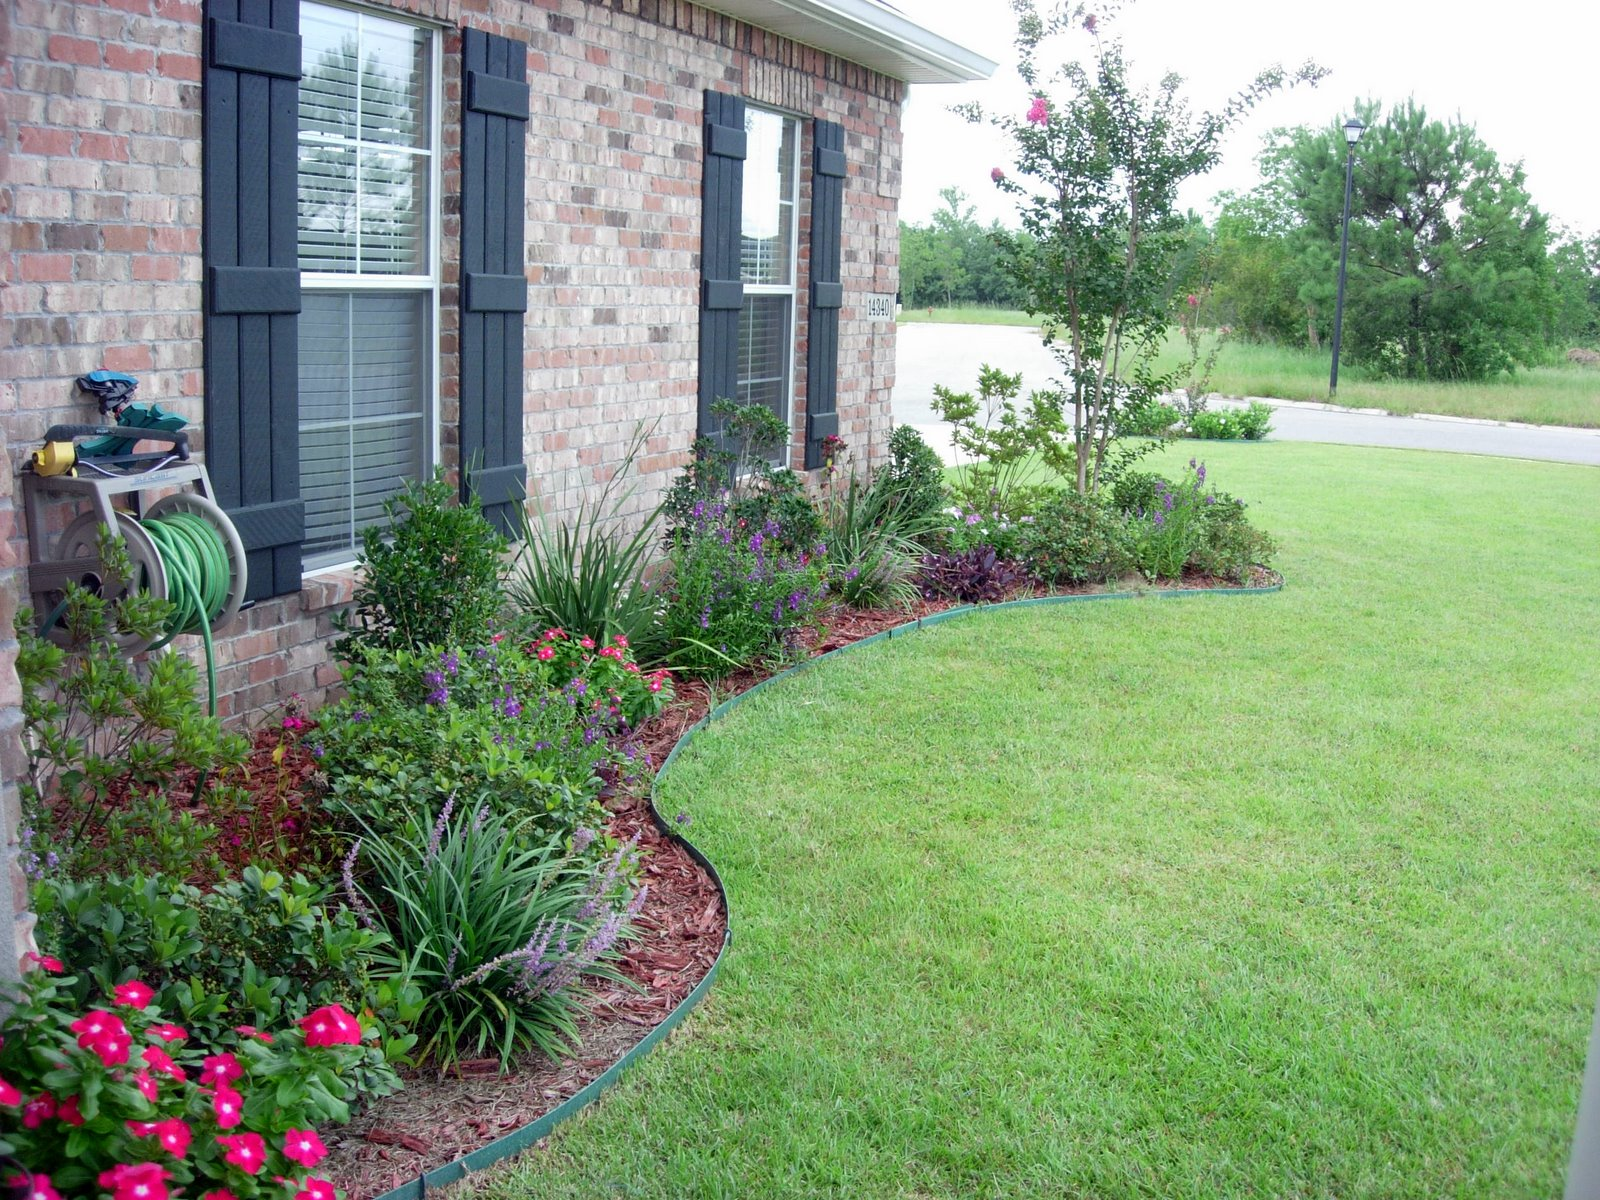 D i y d e s i g n curb appeal part 2 the landscaping for Curb appeal landscaping